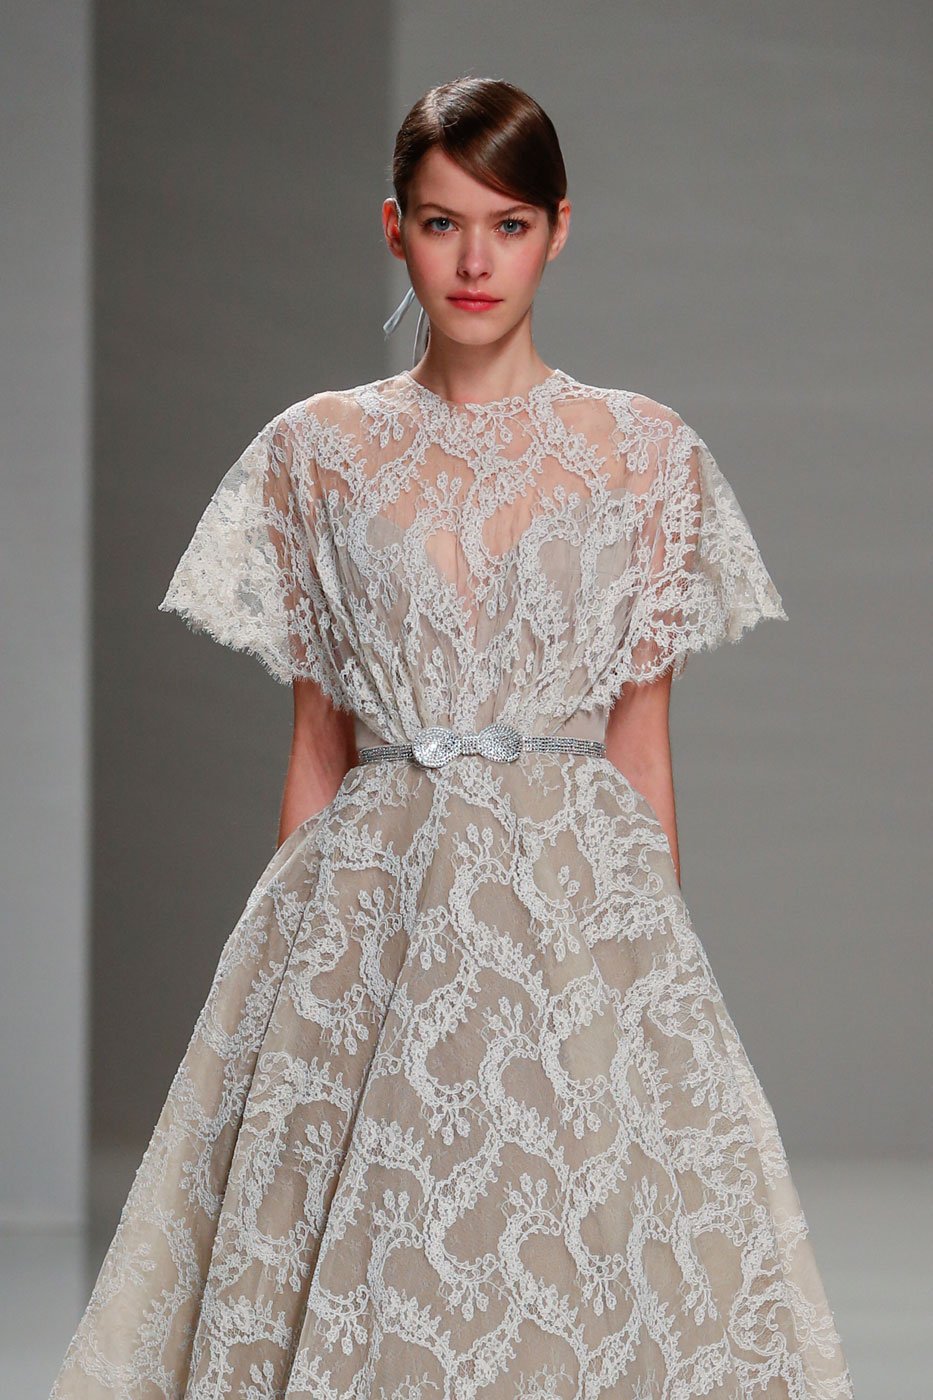 Georges-Hobeika-fashion-runway-show-haute-couture-paris-spring-2015-the-impression-60